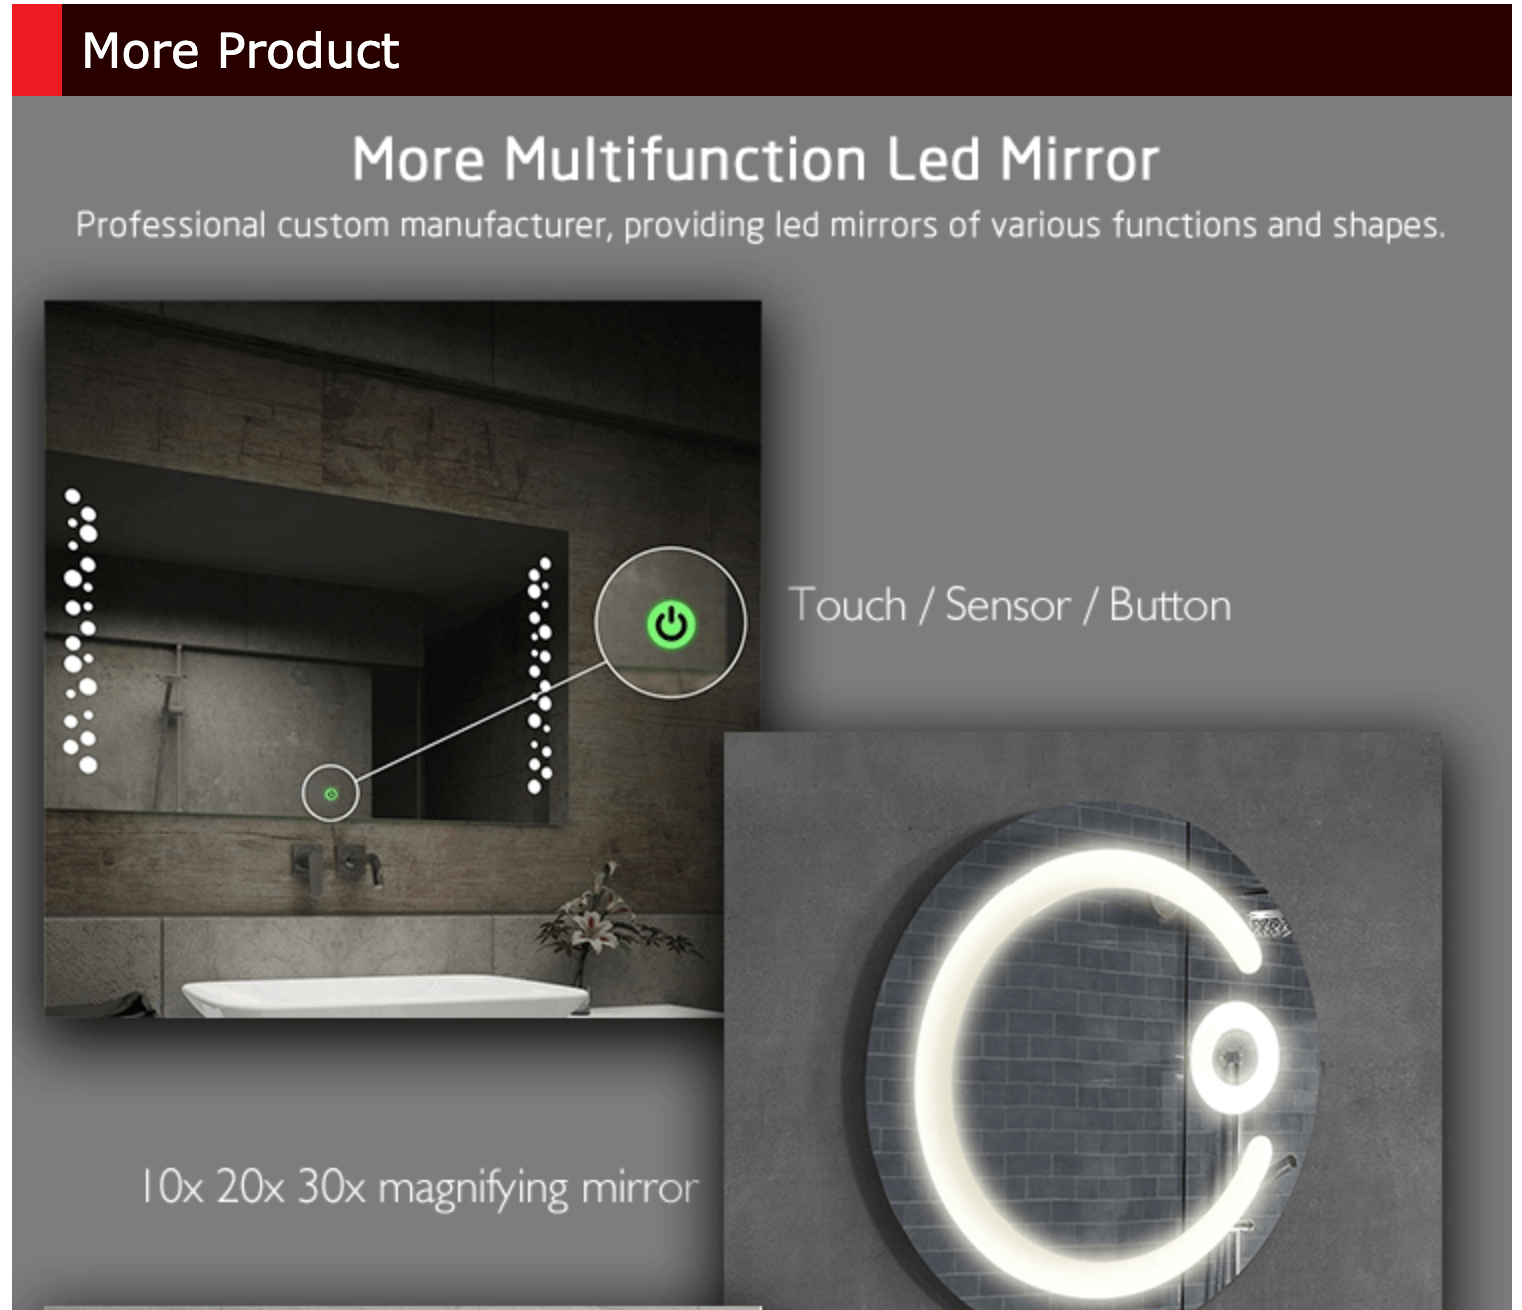 Electric Bathroom Mirrors product details